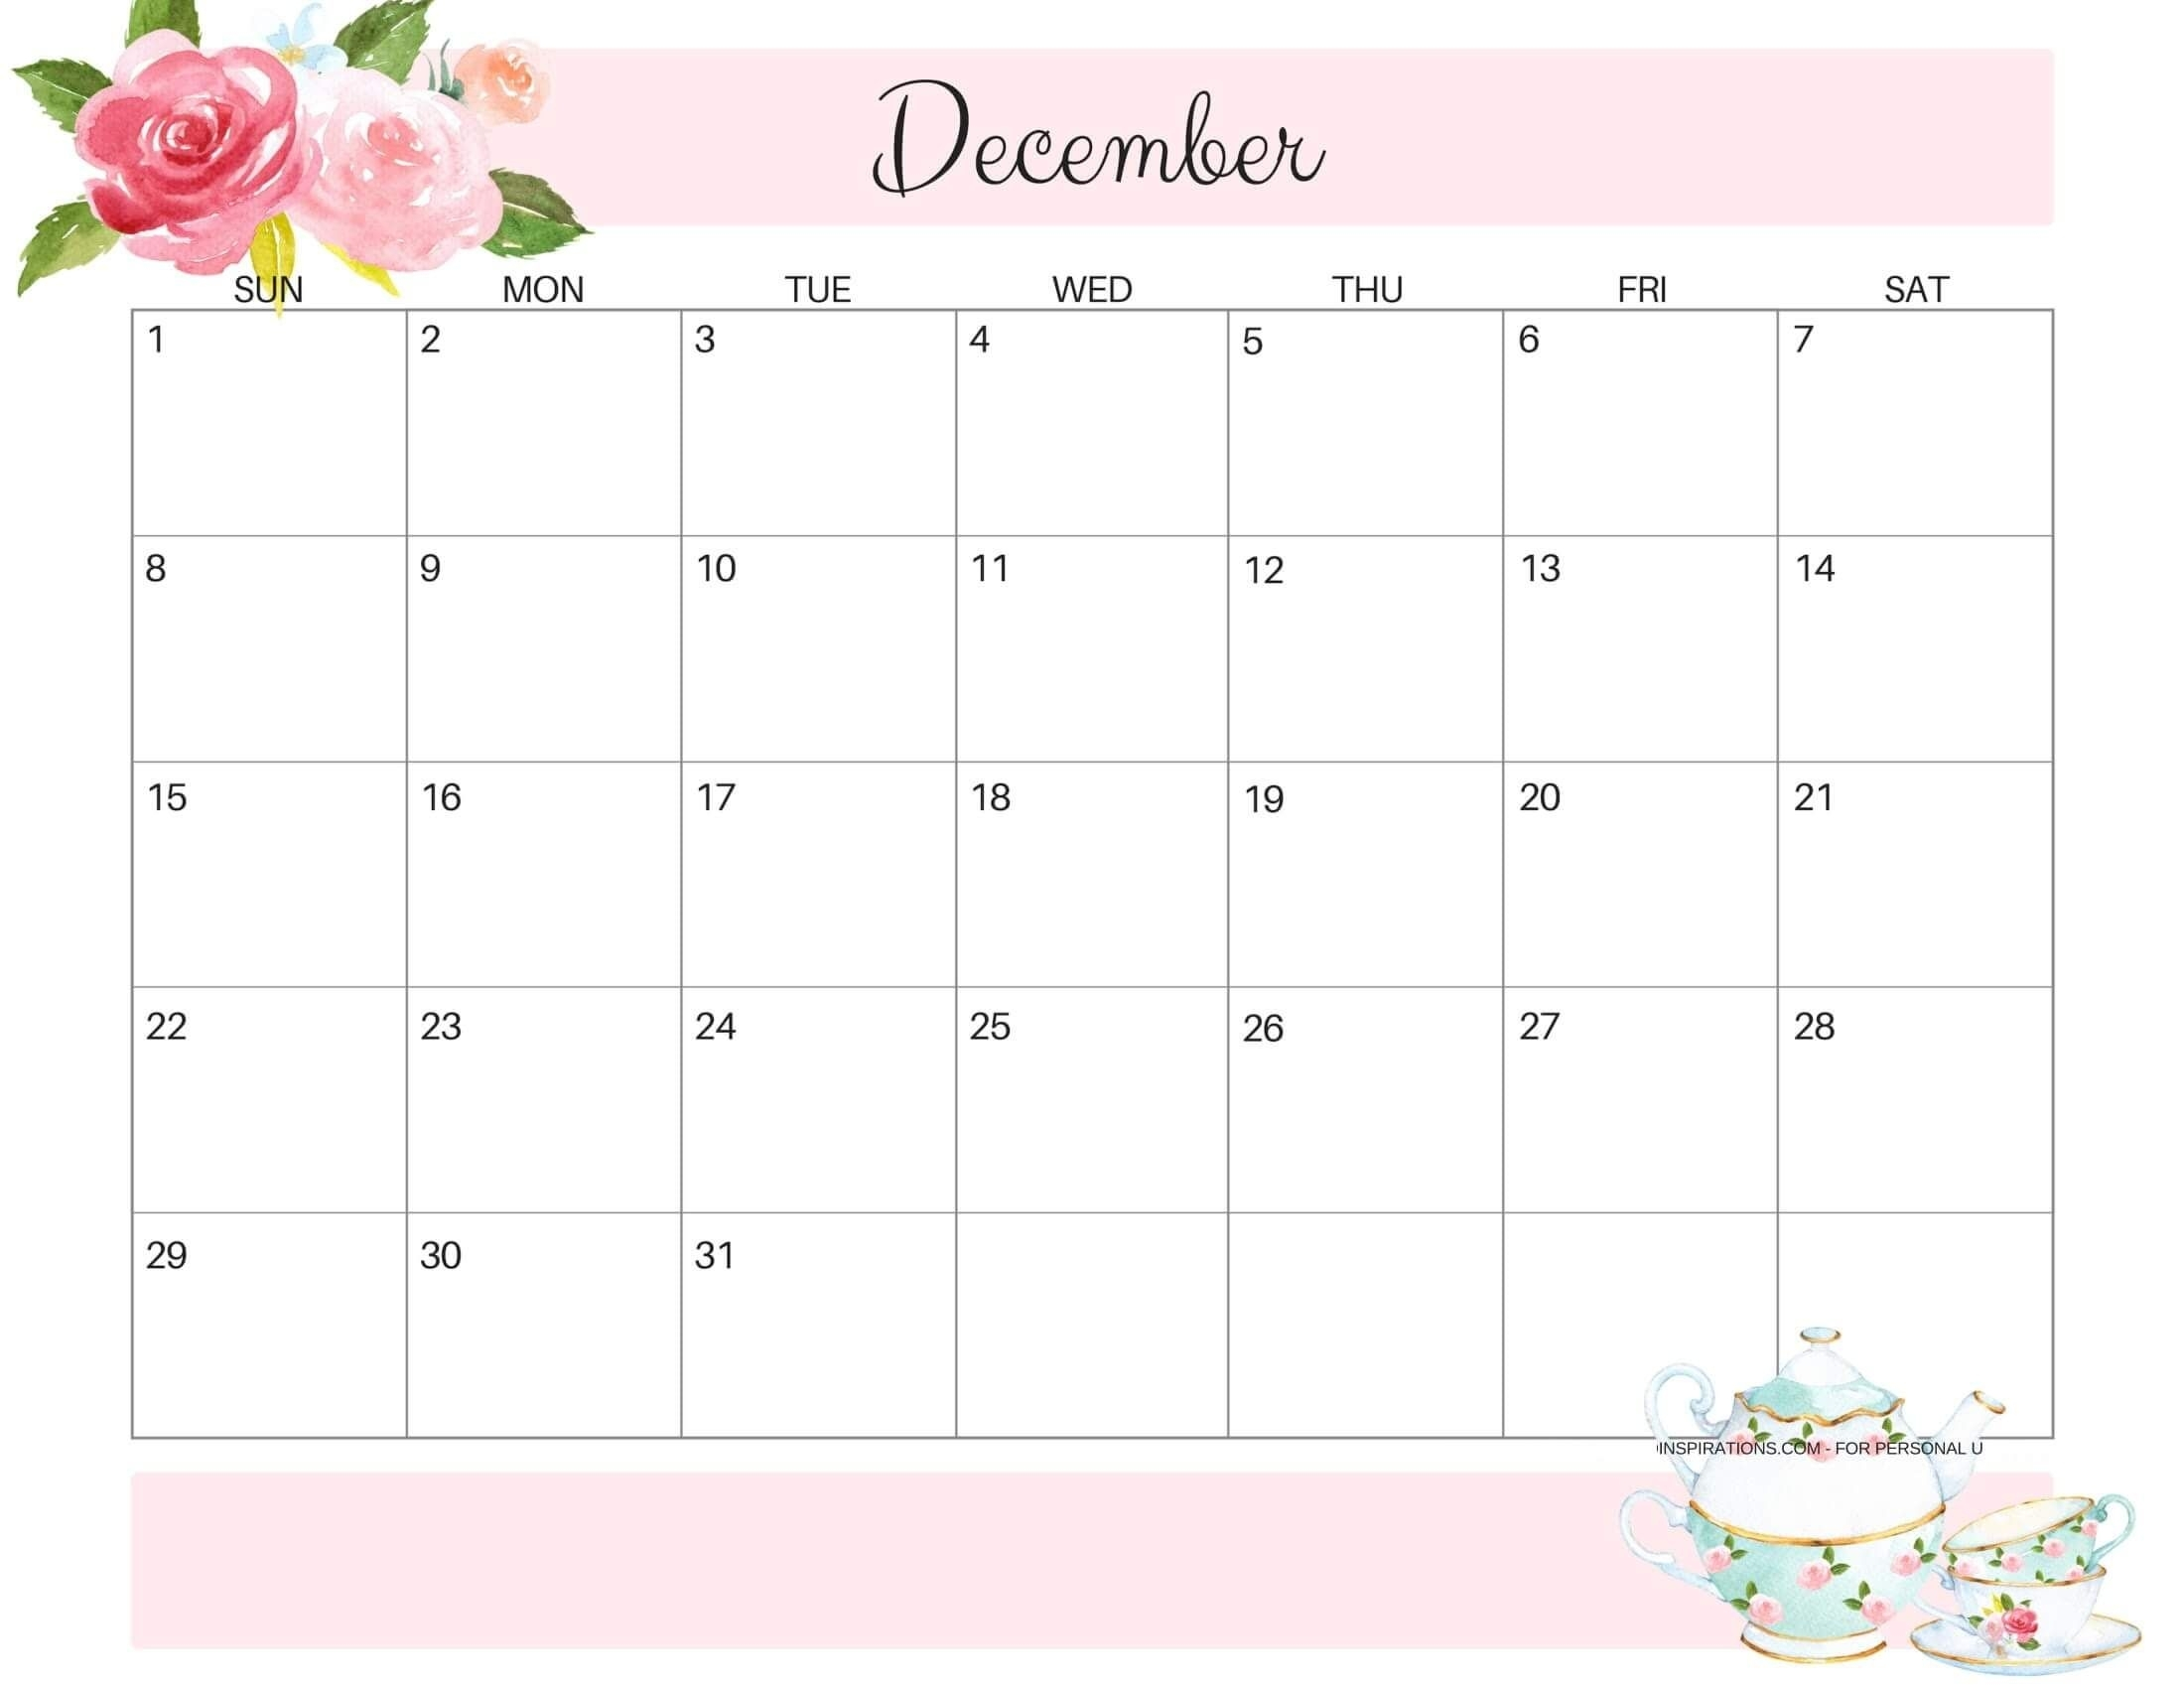 Pin On December Calendars throughout December 2019 Printables And Inspirations